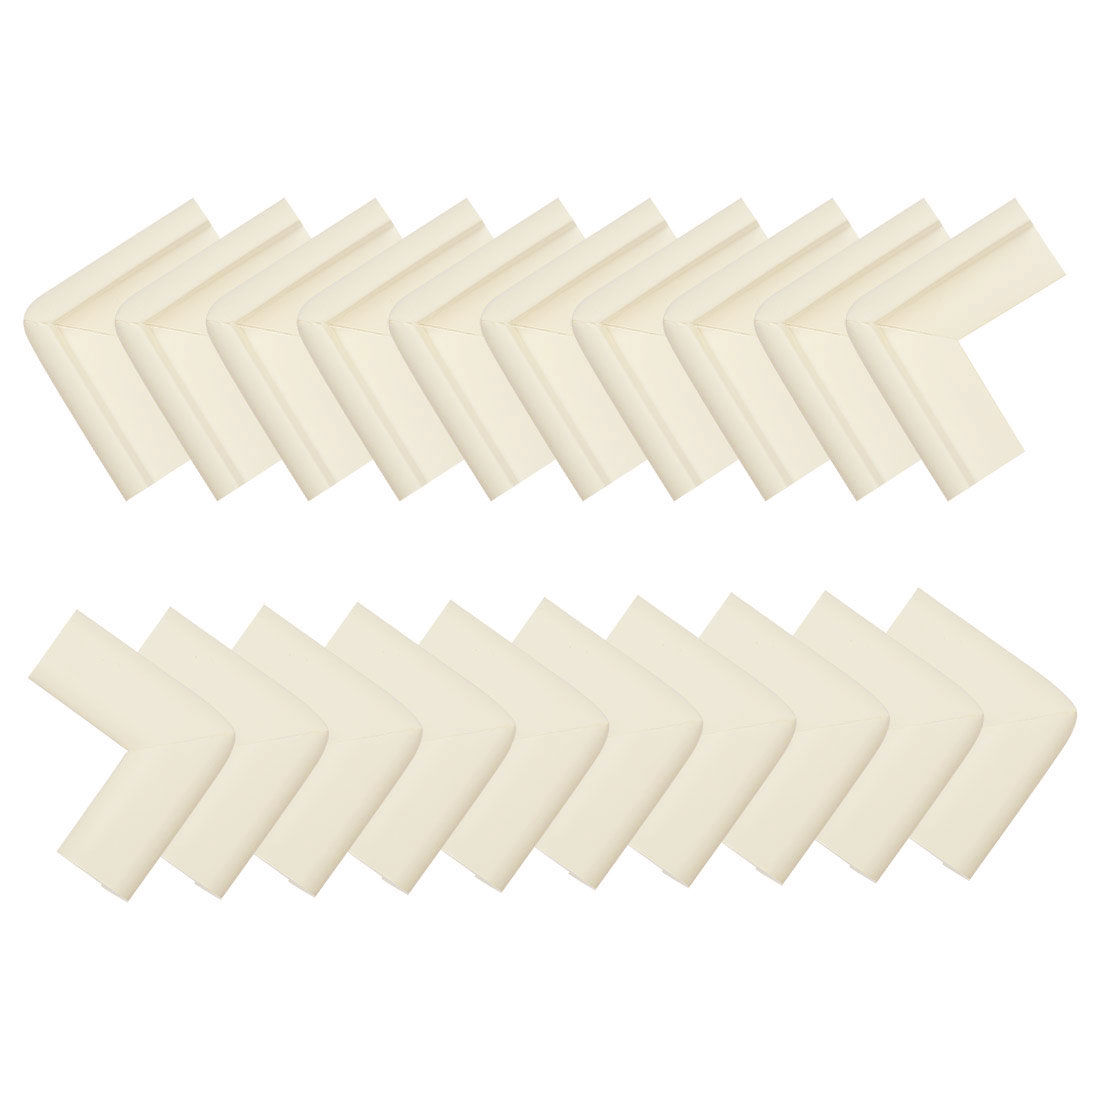 20pcs Furniture Edge Corner Guard Cushion Angle Protector w Self-stick Beige